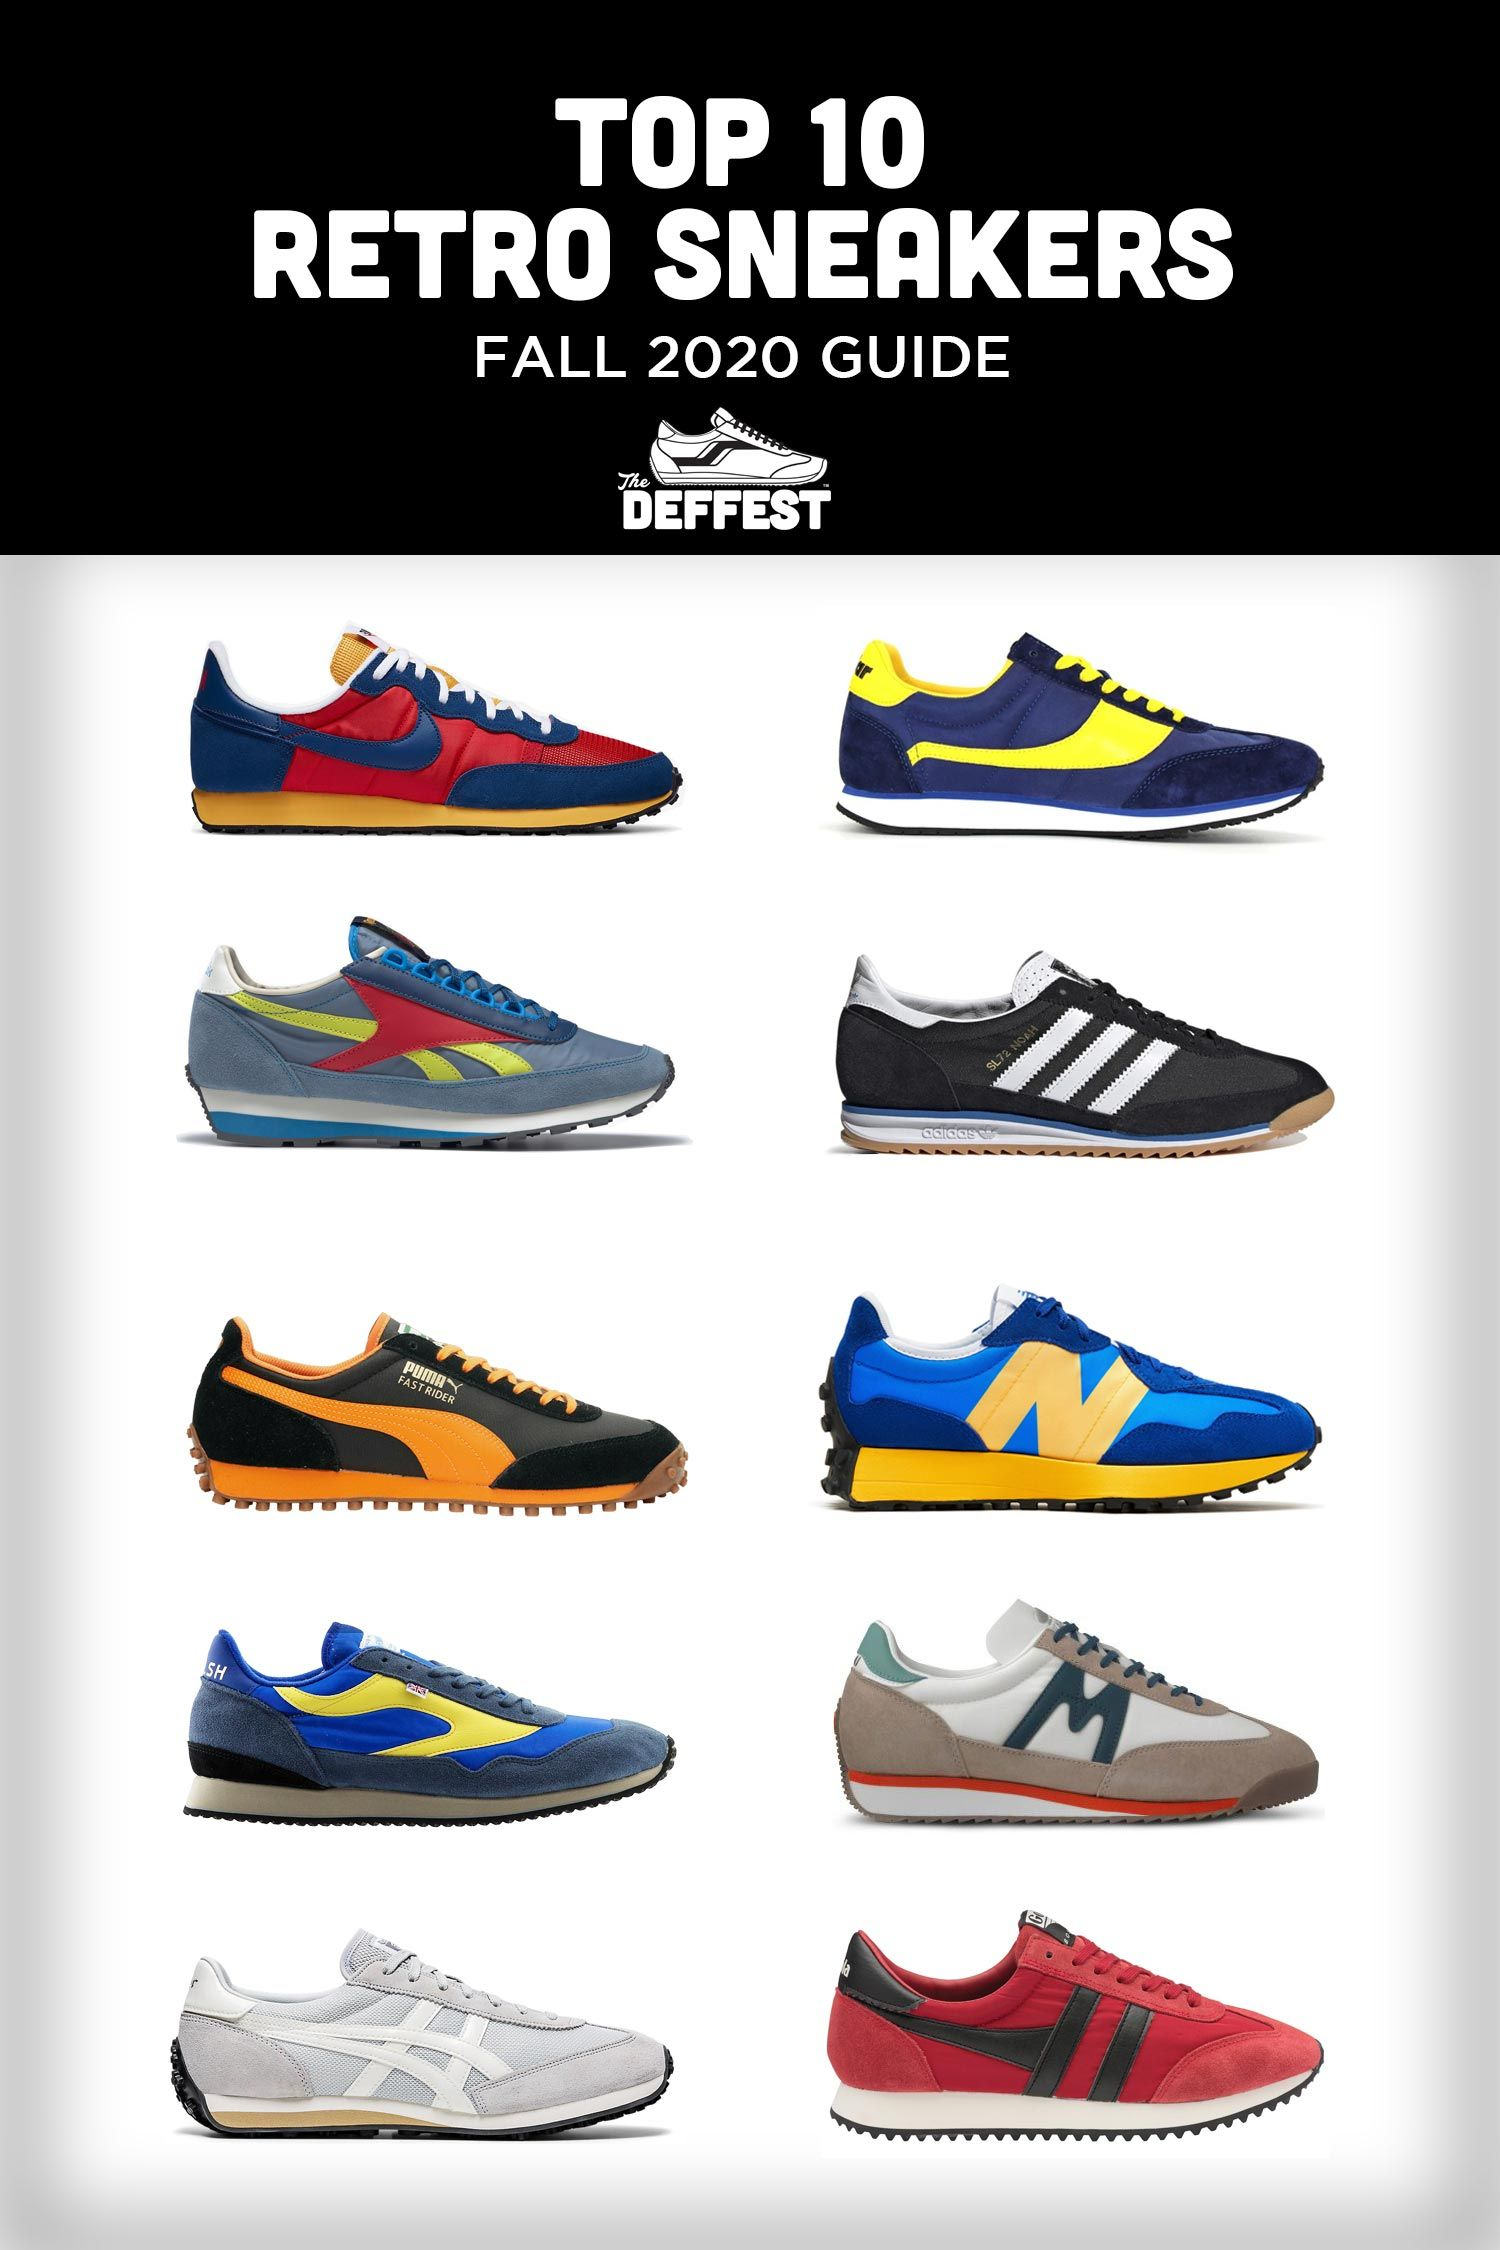 TOP 10 RETRO SNEAKERS OUT NOW - FALL